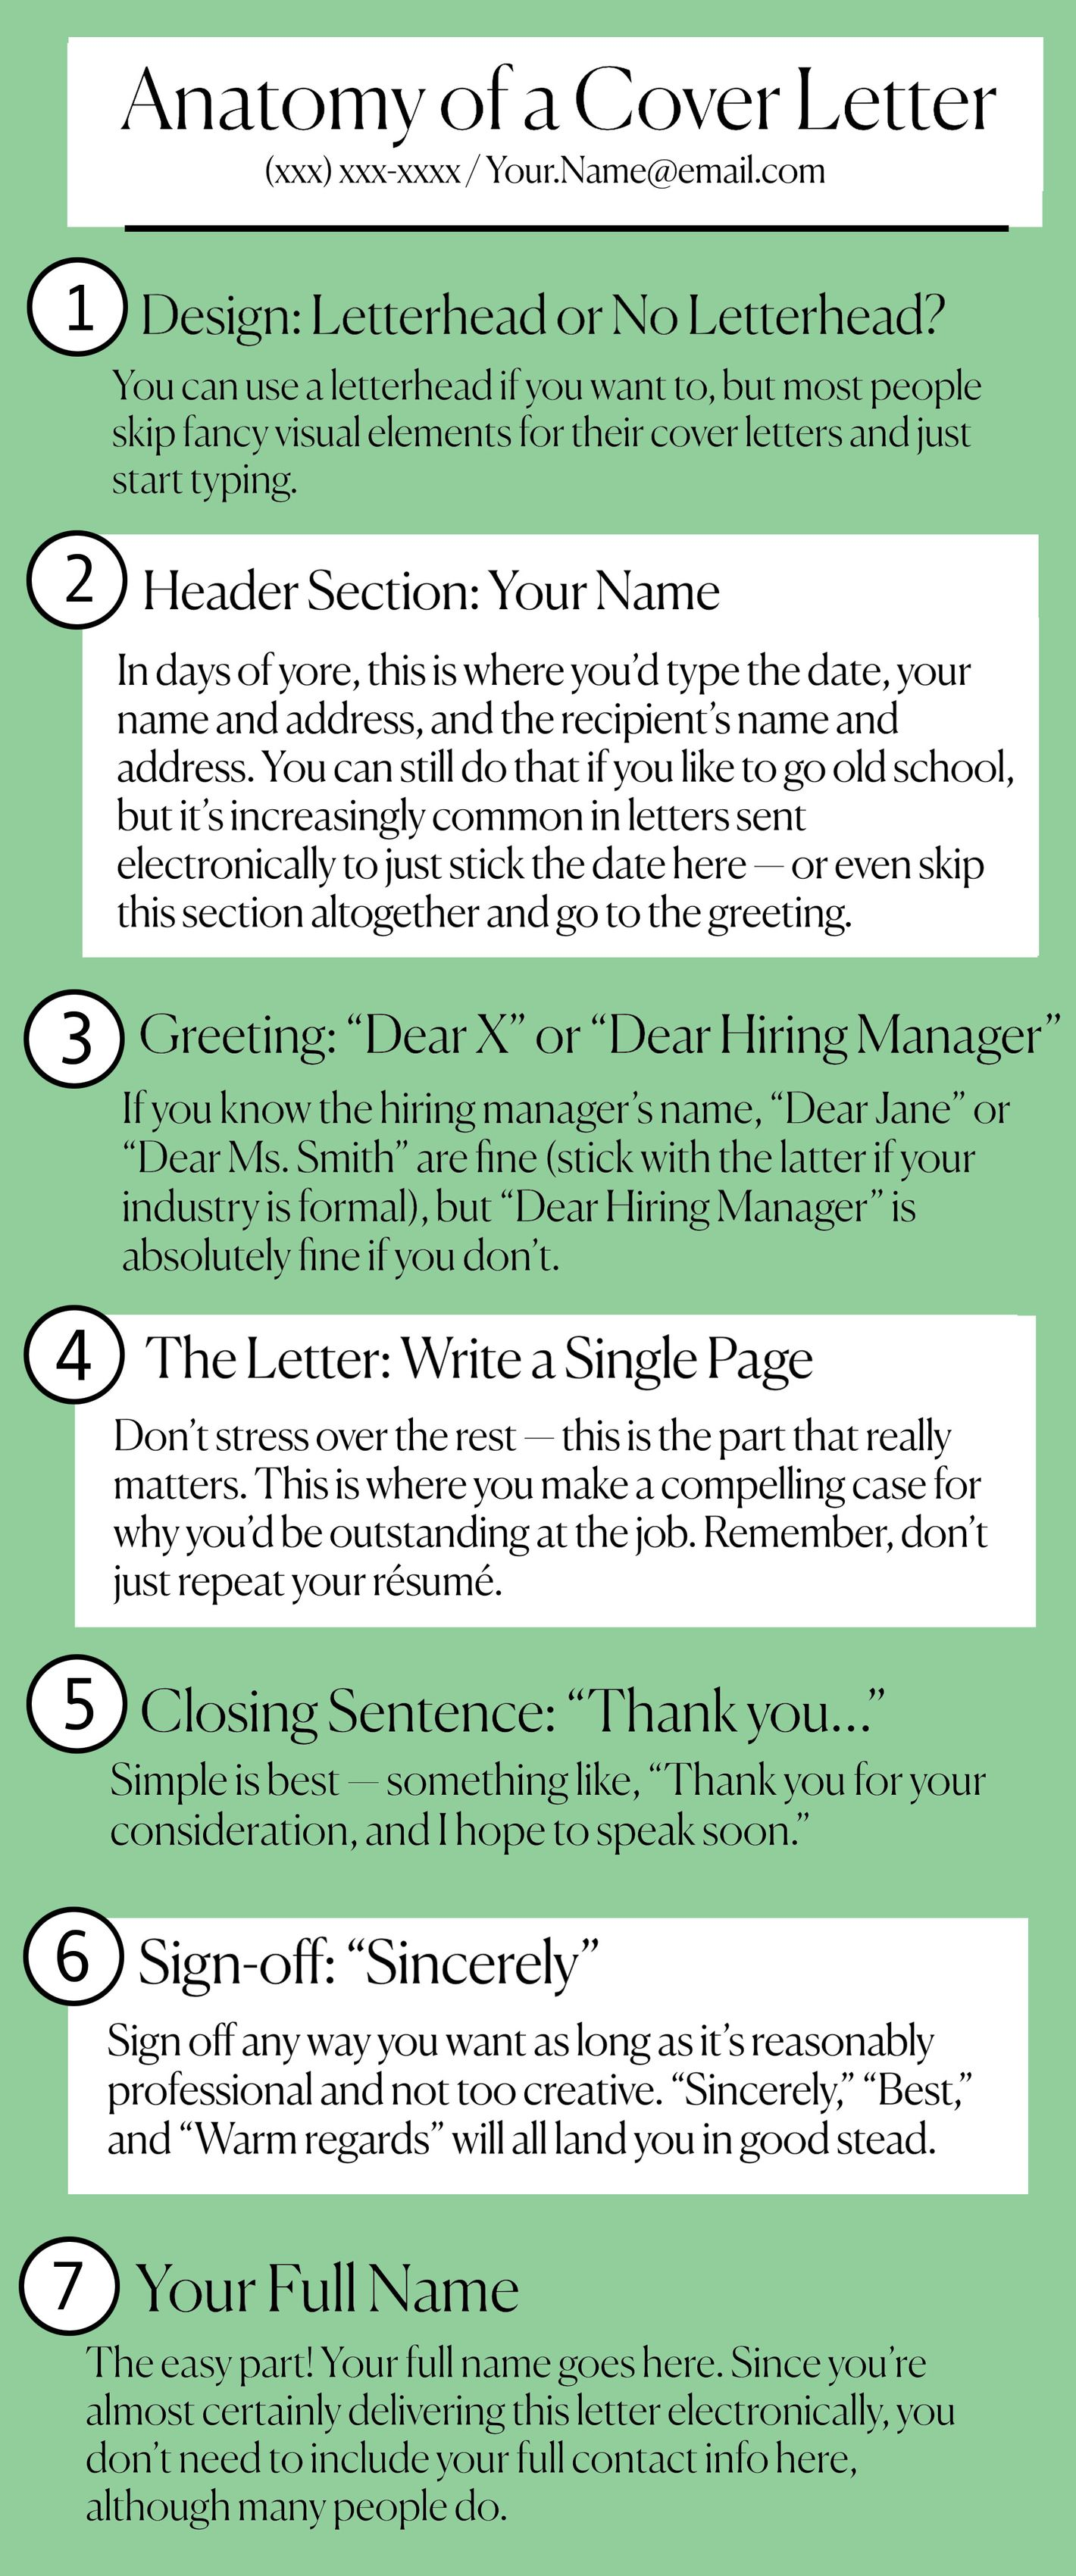 steps on how to write a cover letter.html